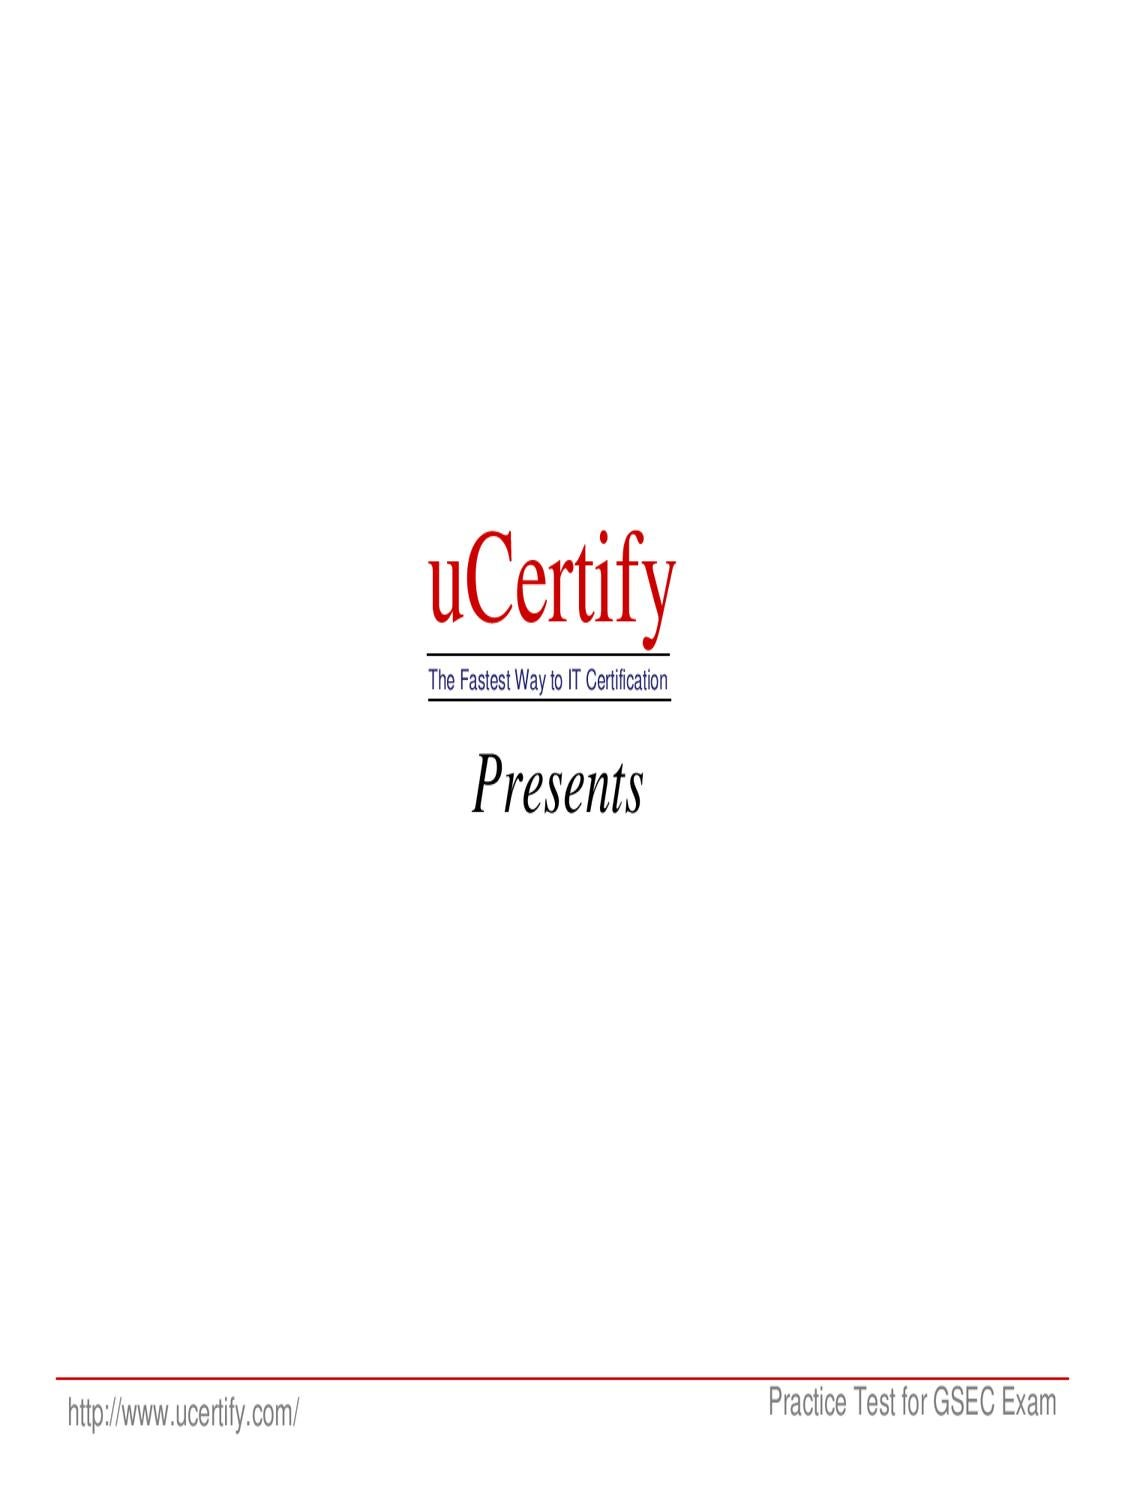 Ucertify gsec practice questions pdf by ucertify certification issuu xflitez Images